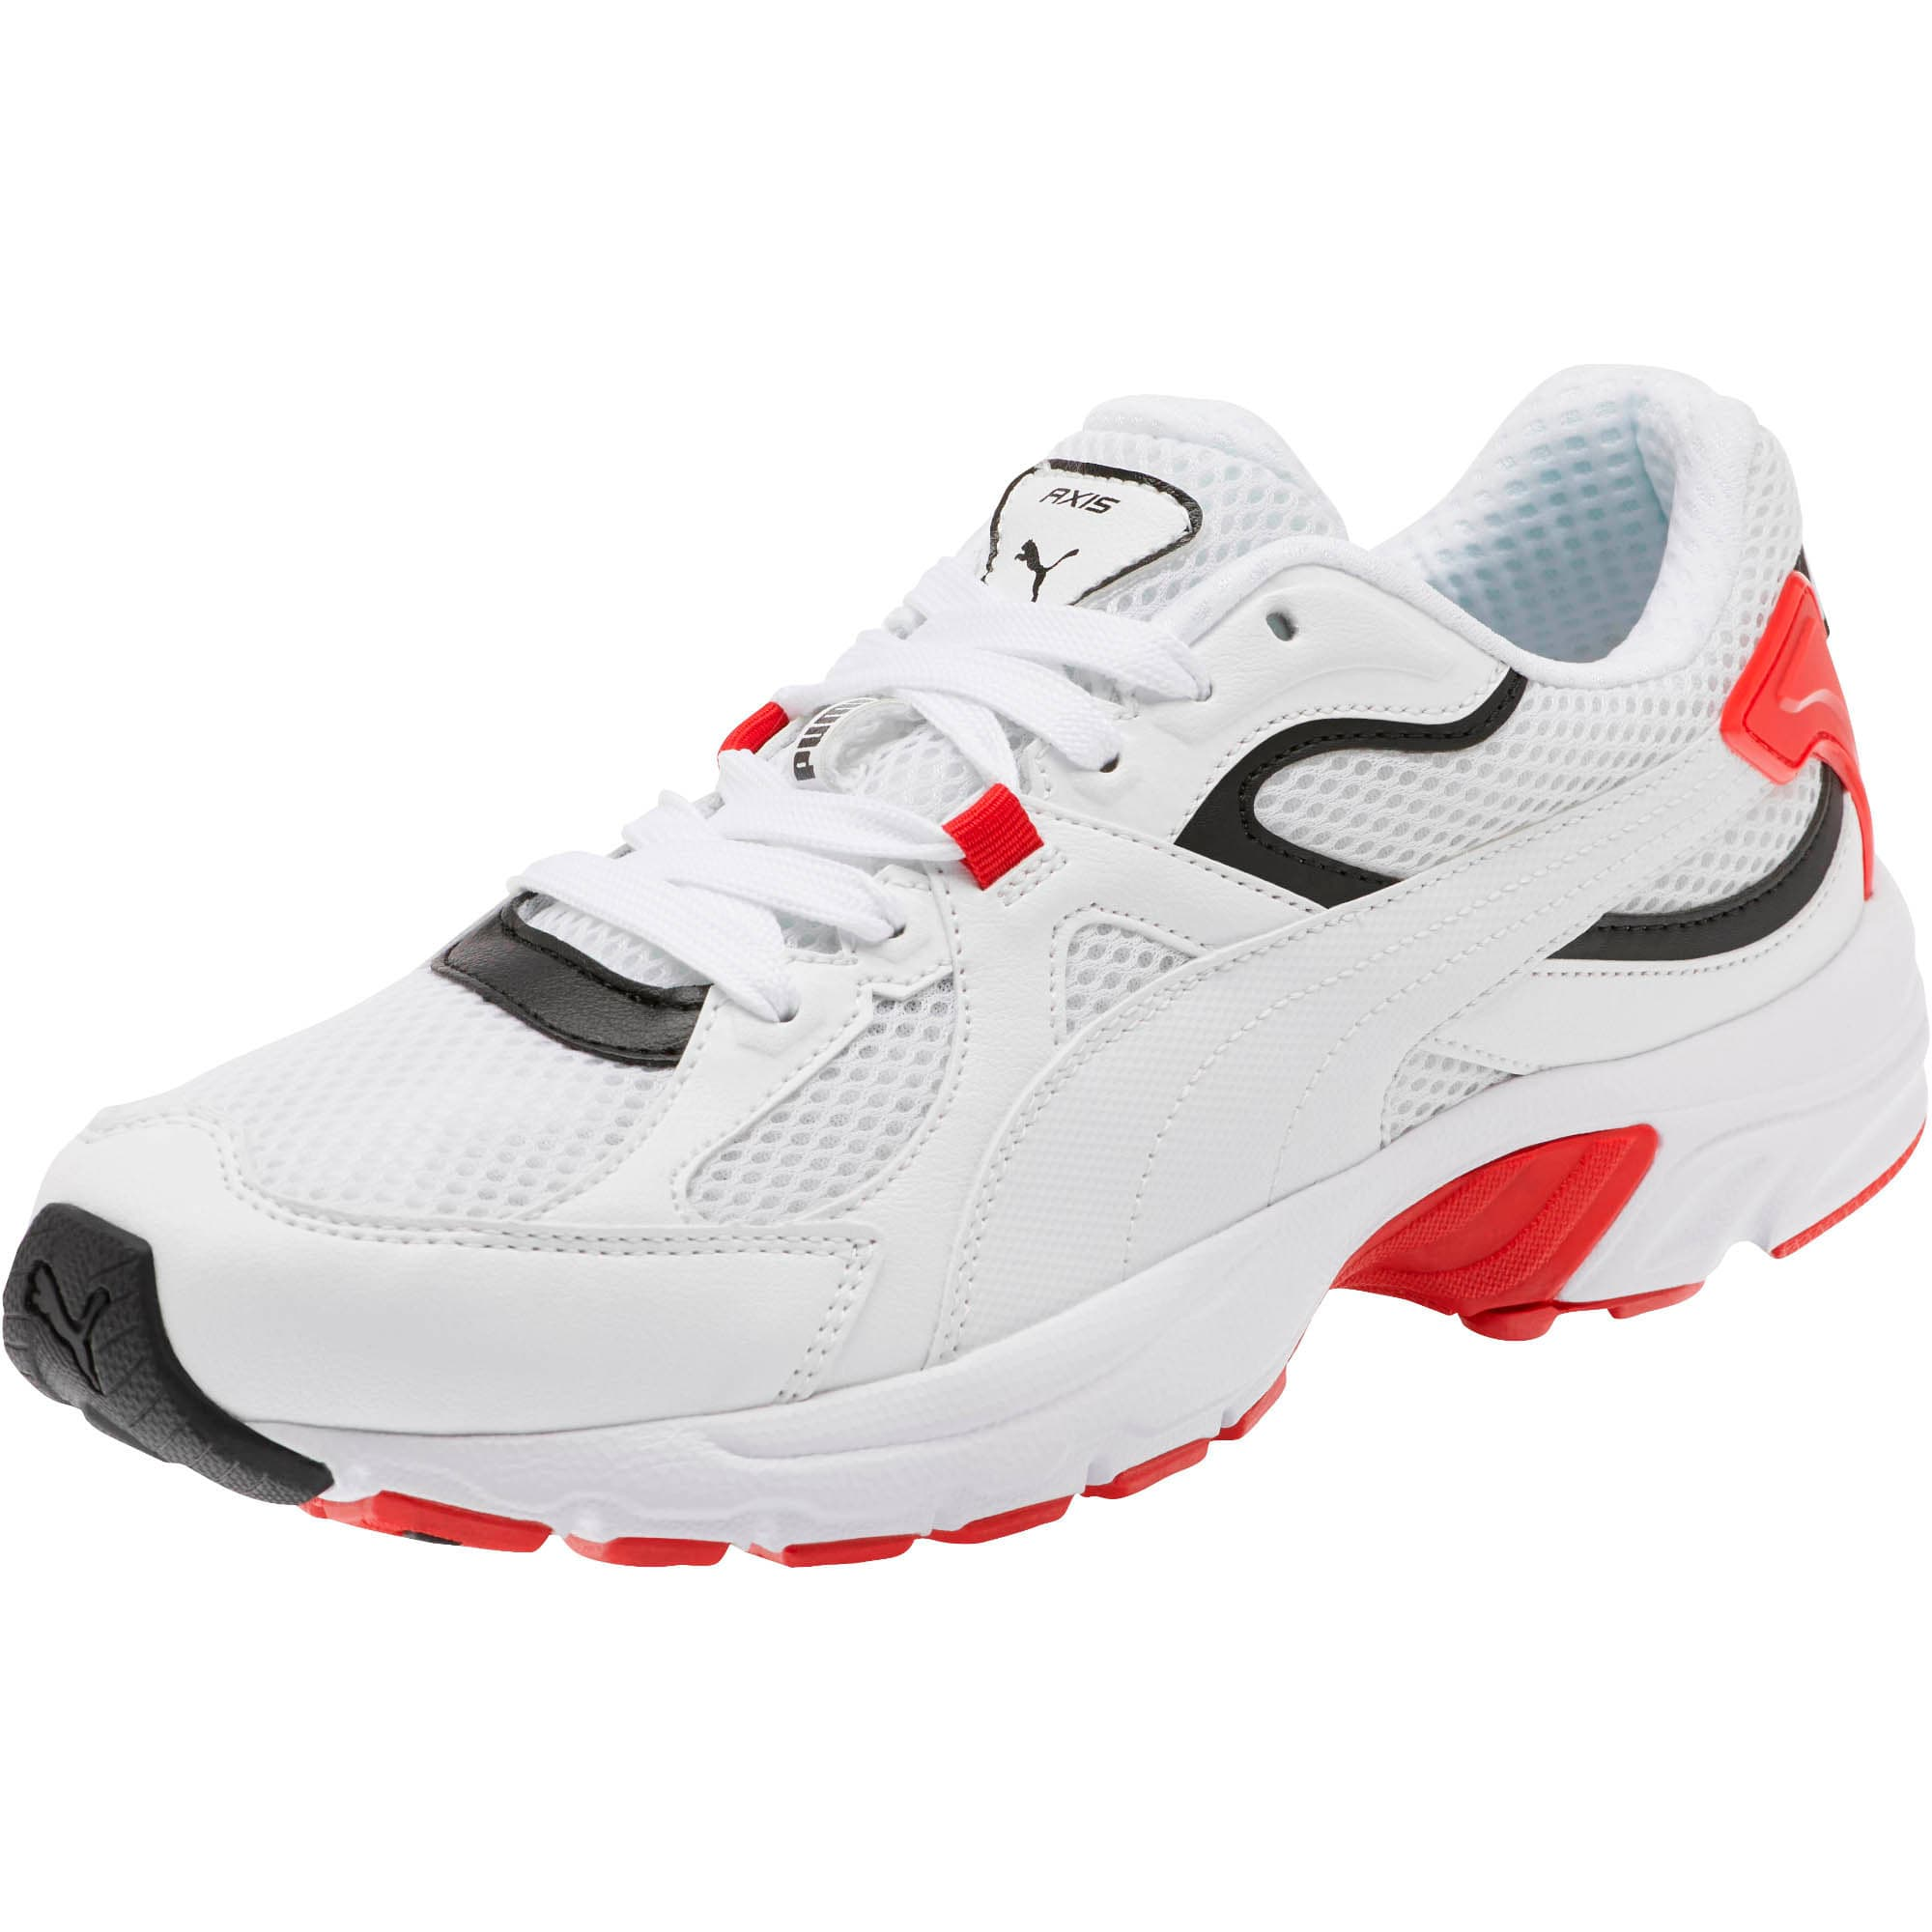 Thumbnail 1 of Axis Plus 90s Sneakers, Puma White-Puma Black-Red, medium